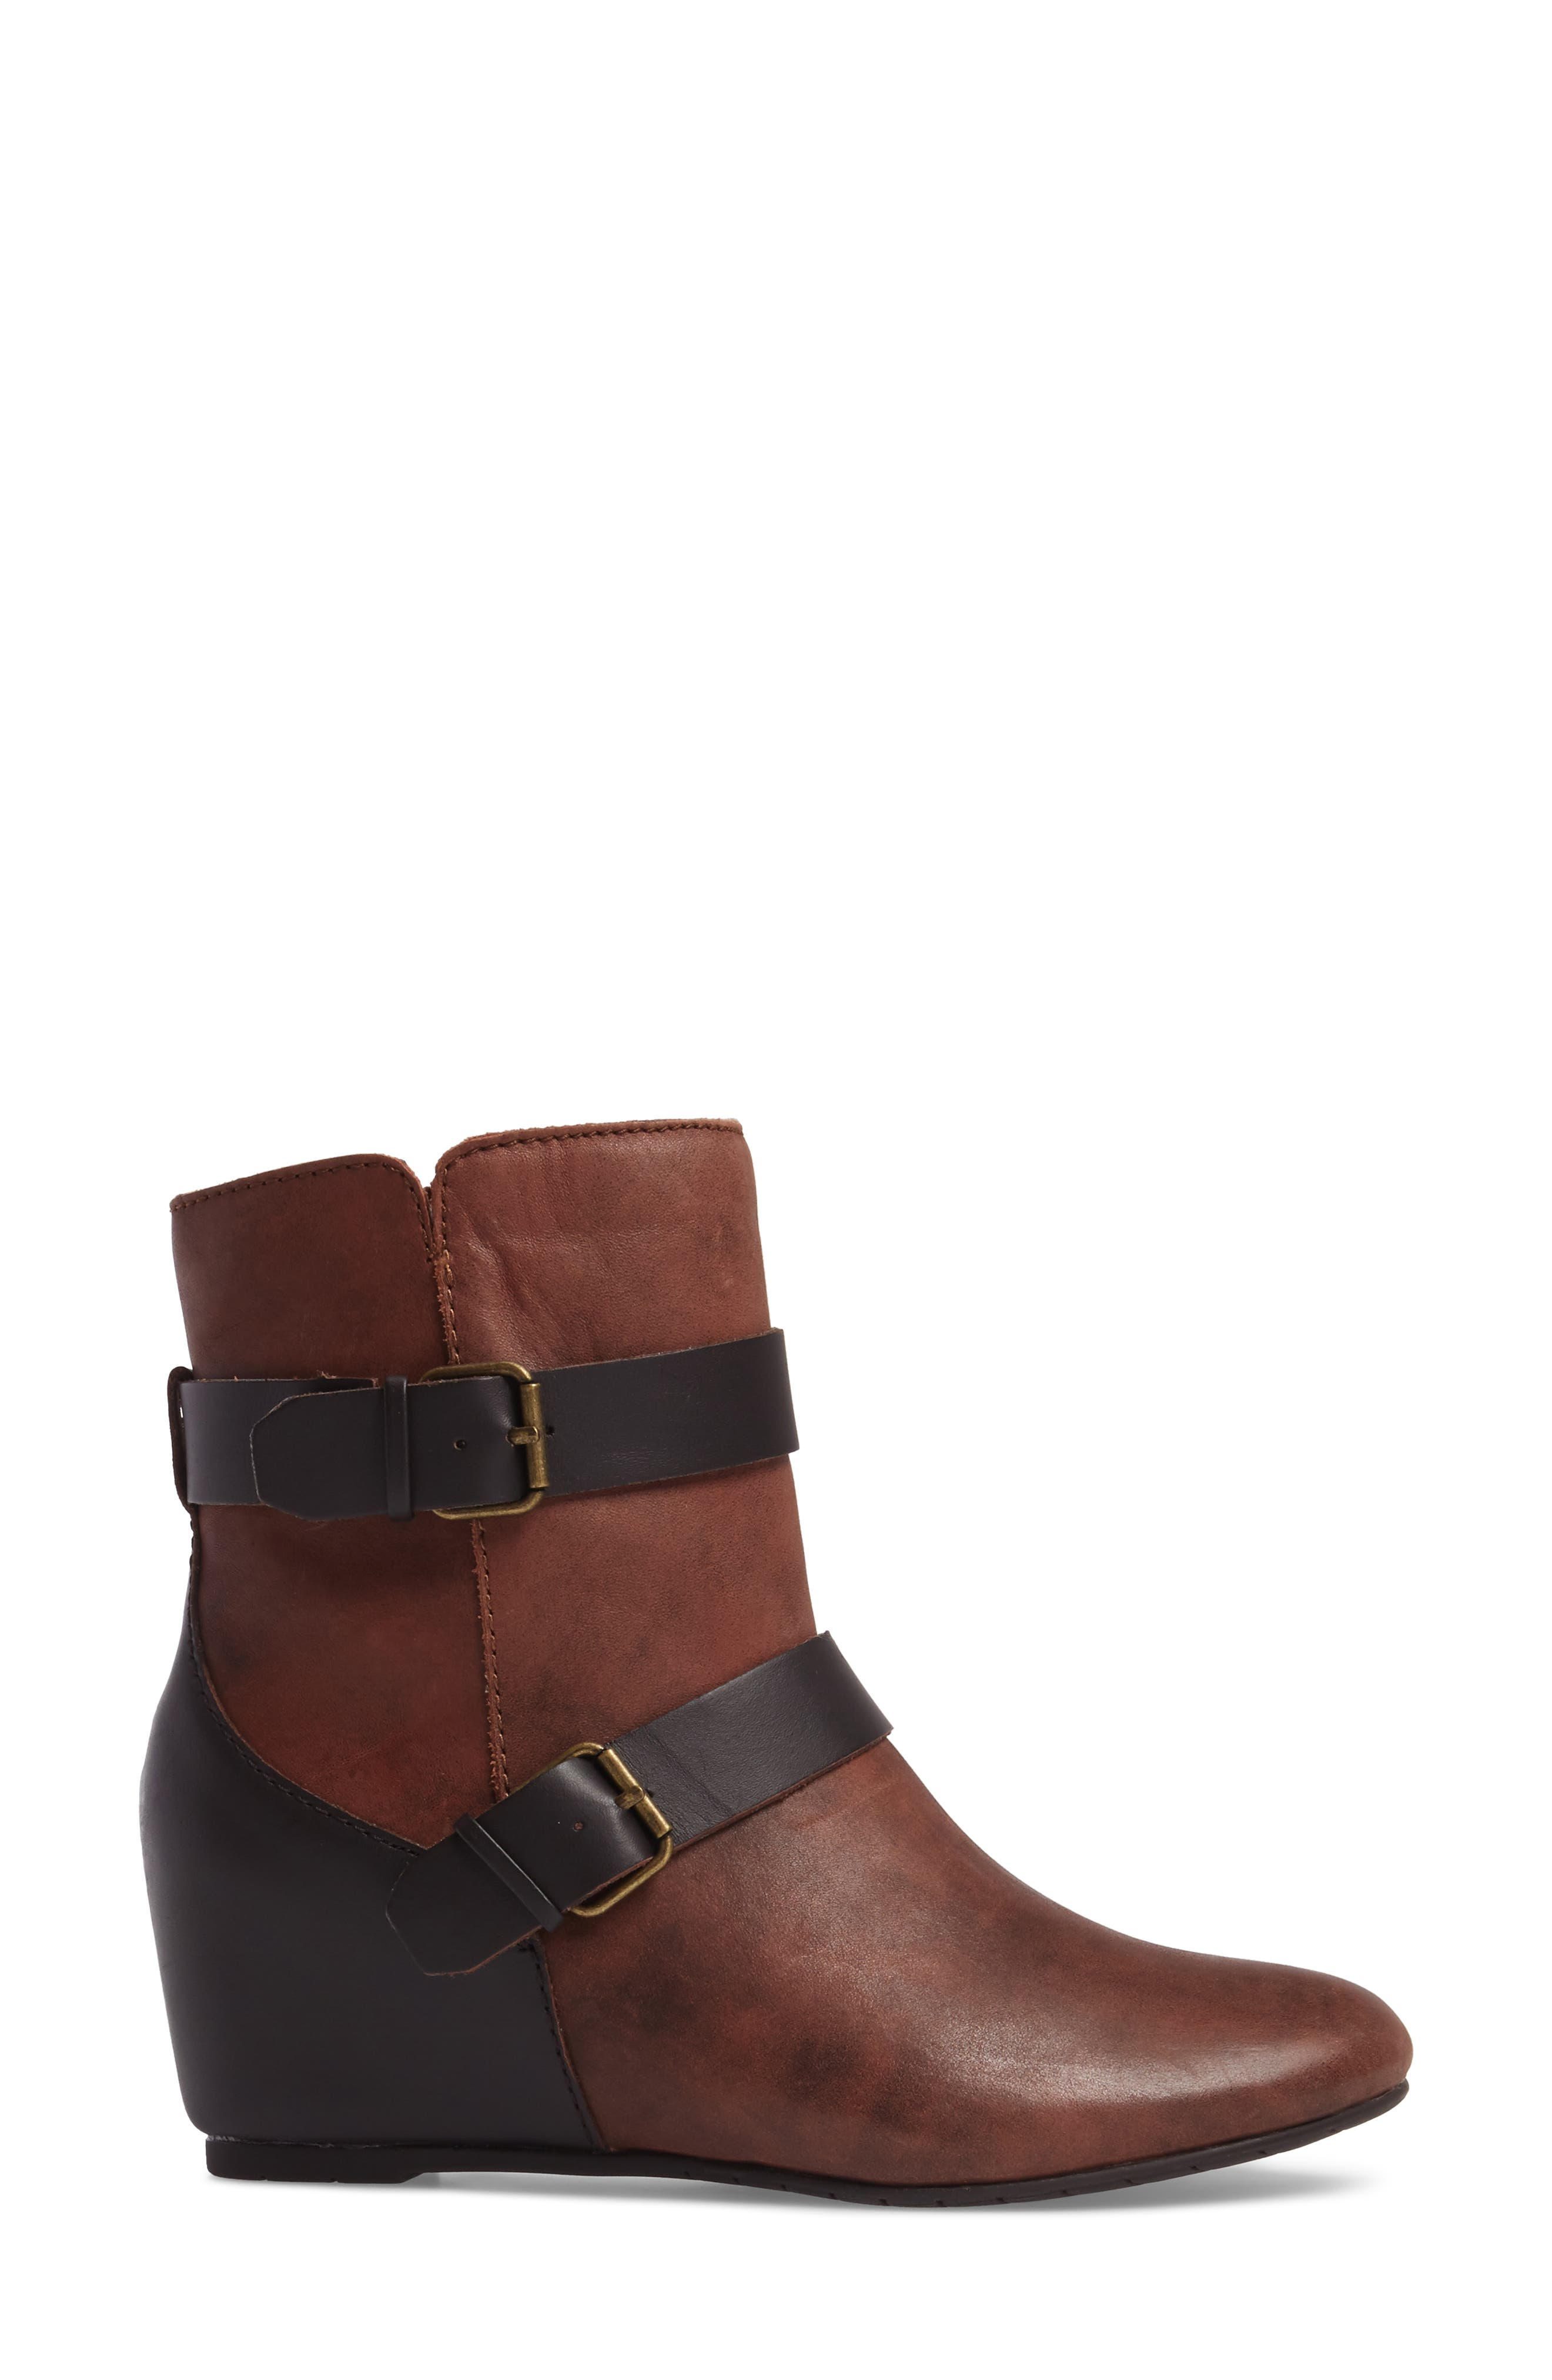 Ramika Wedge Bootie,                             Alternate thumbnail 3, color,                             Mahogany Leather